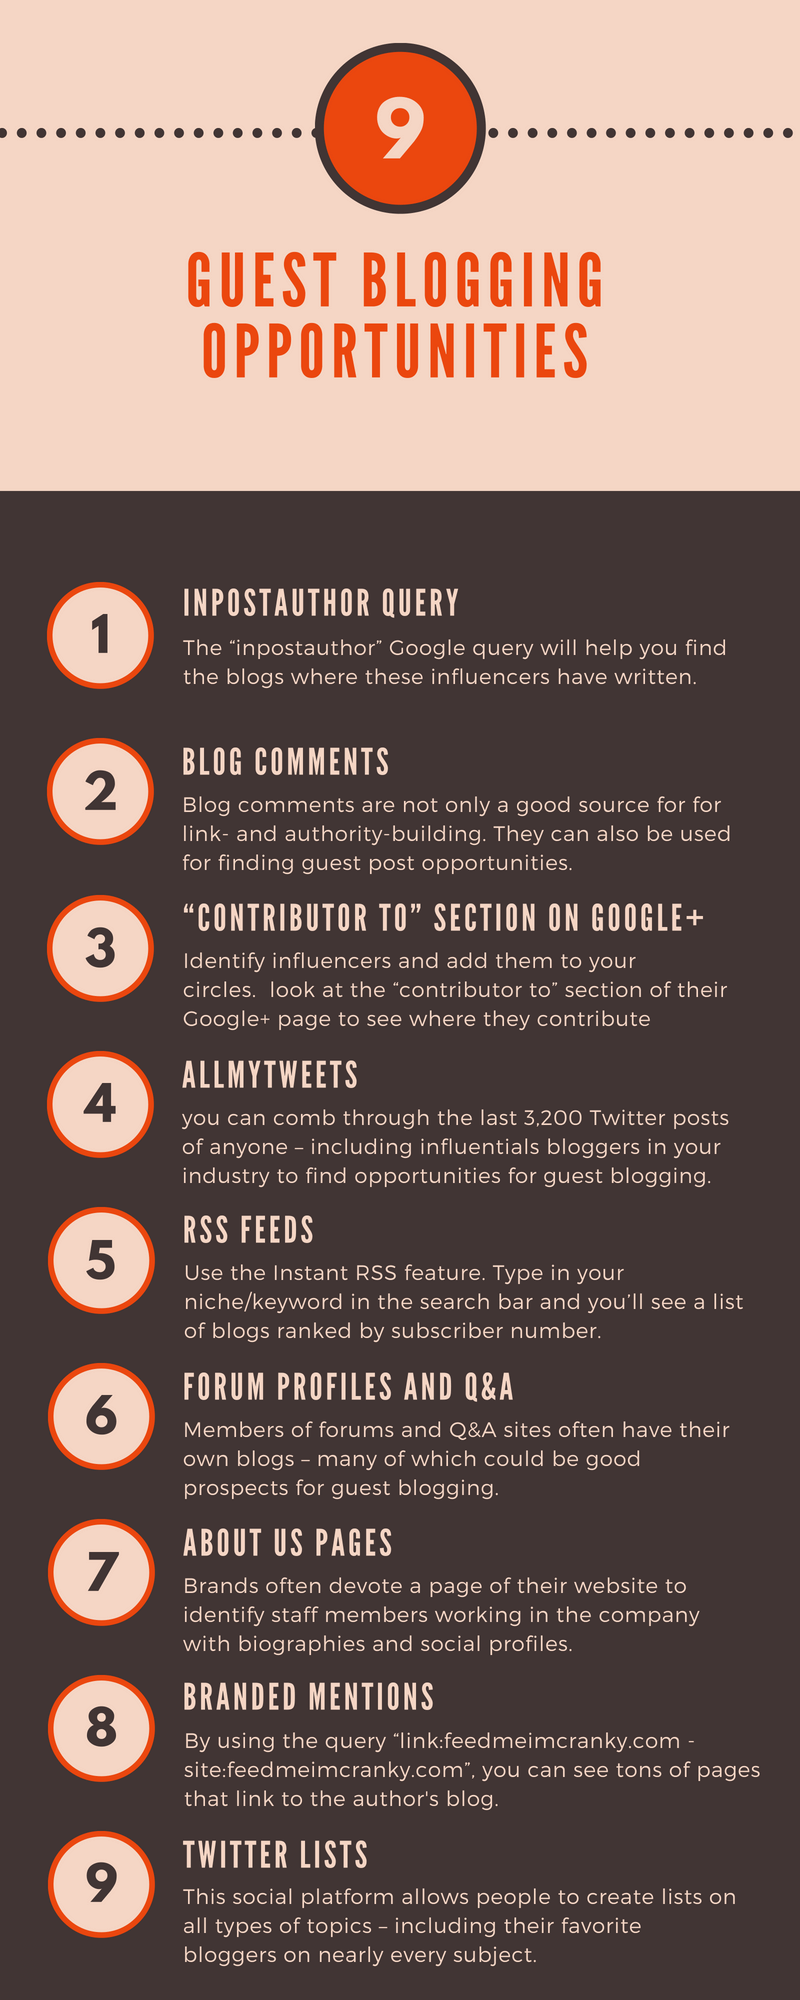 9 Guest Blogging Opportunities